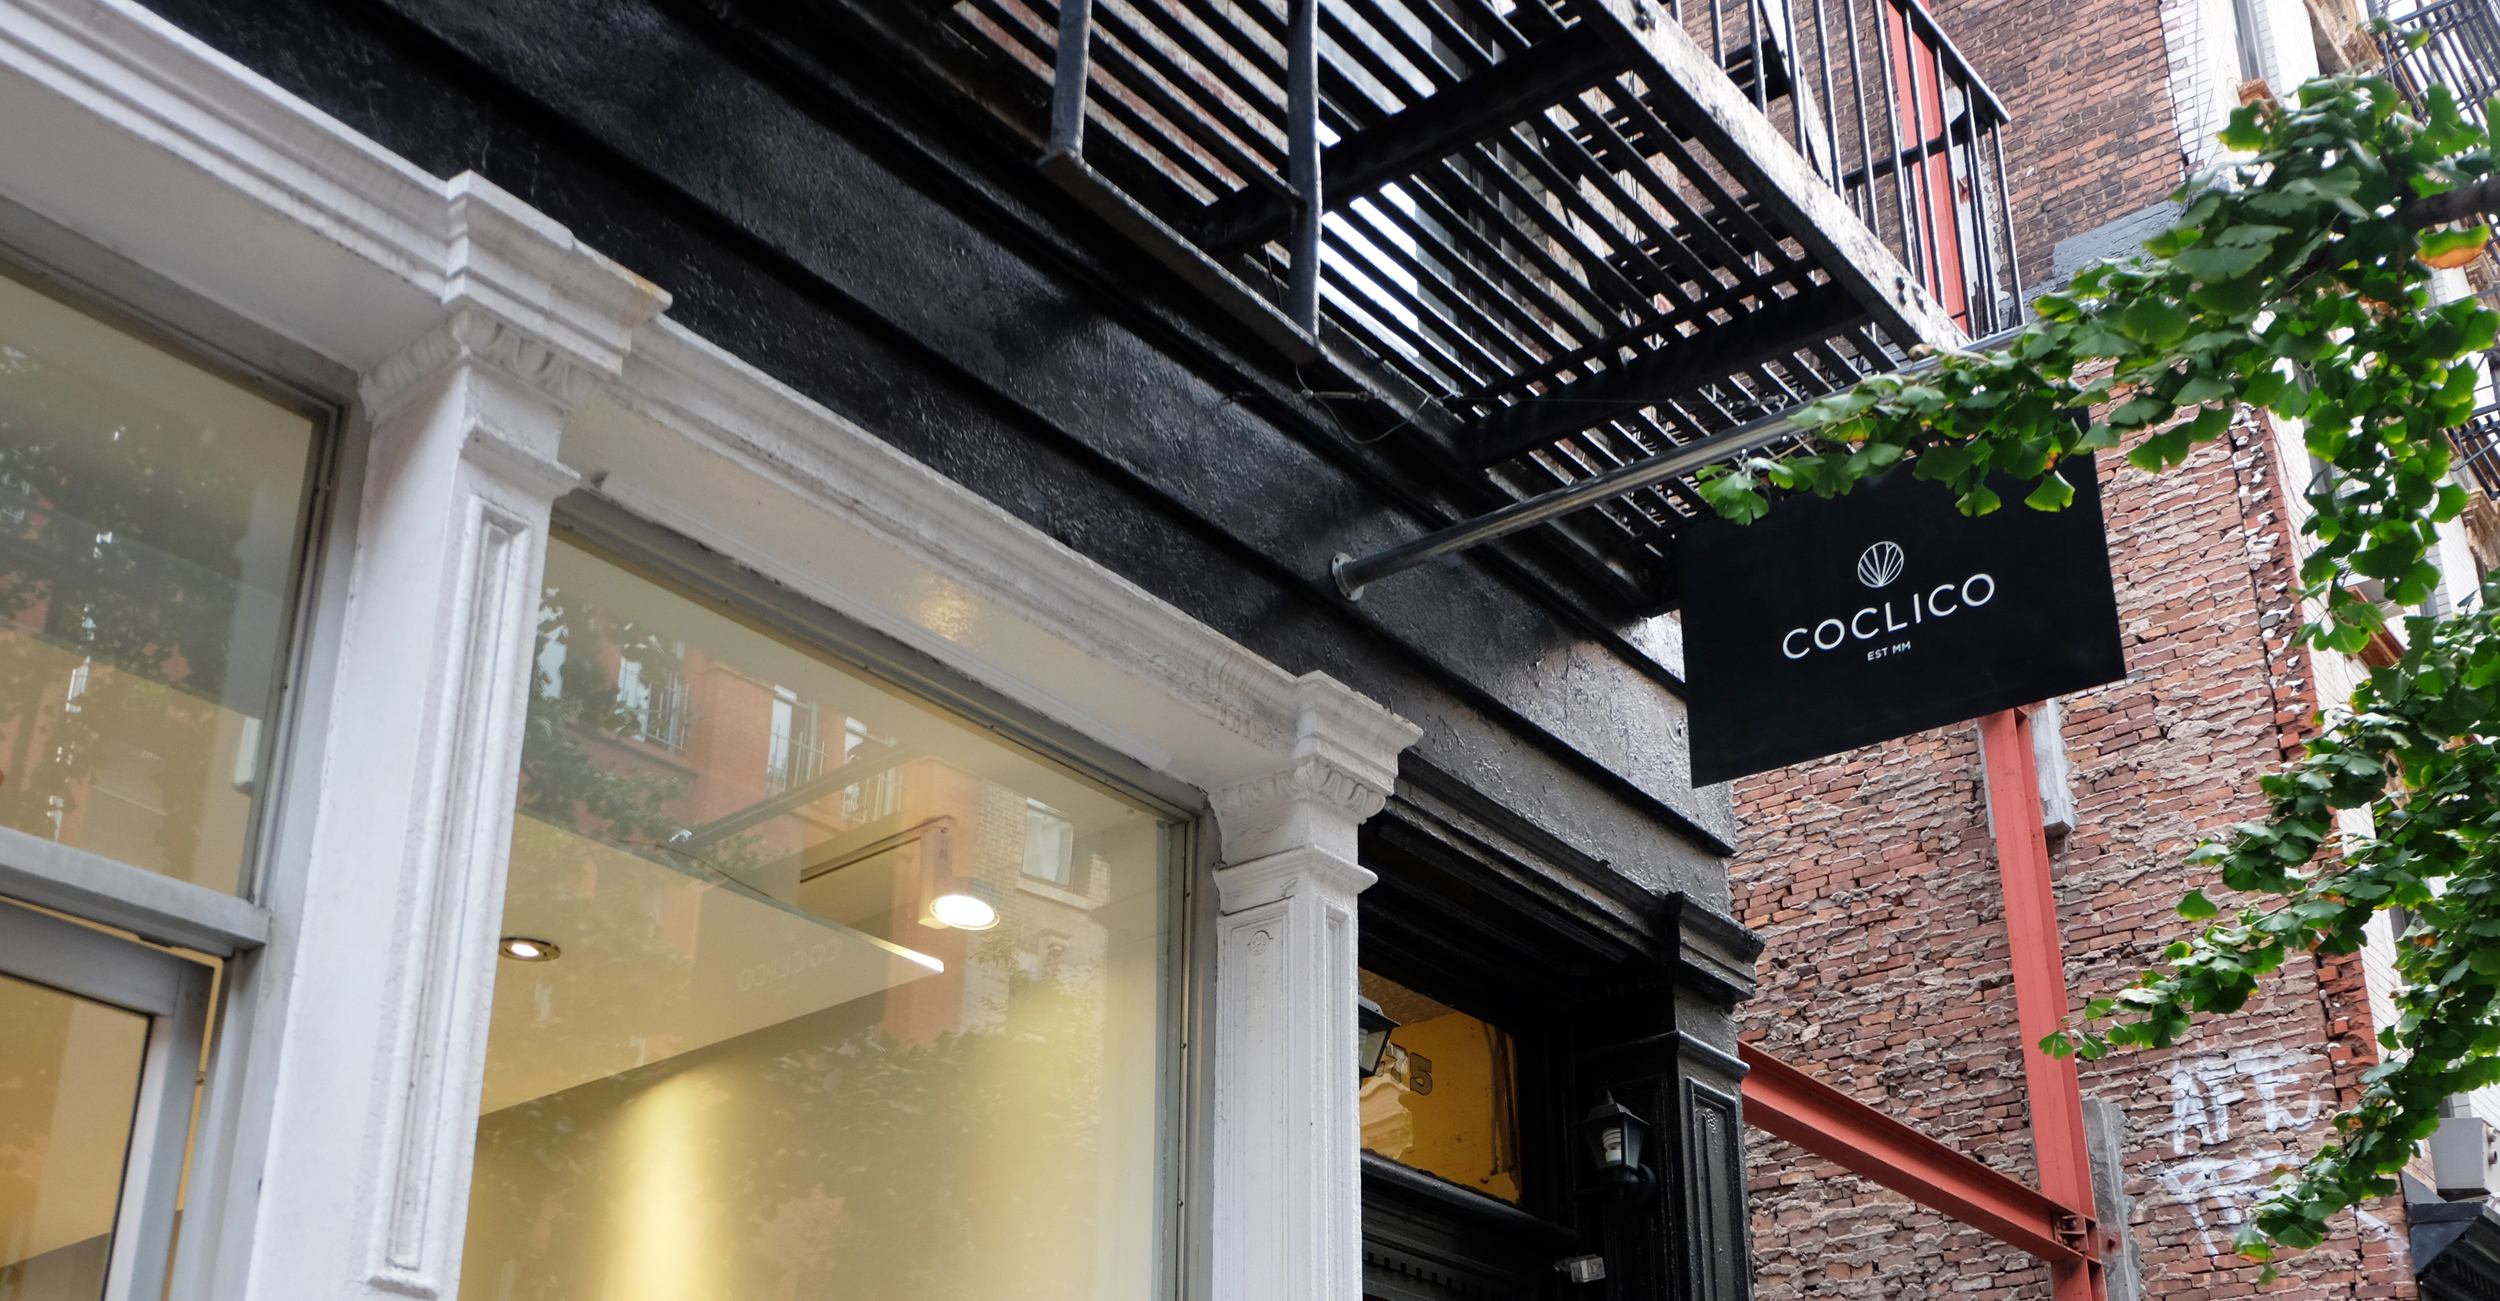 """Coclico  / 275 Mott Street. New York, NY 10012 / 212-965-5462  I like their oxford silhouette because it's not too narrow or wide. I recently got a pair of their """"Hima flat.""""They're very comfortable and versatile."""